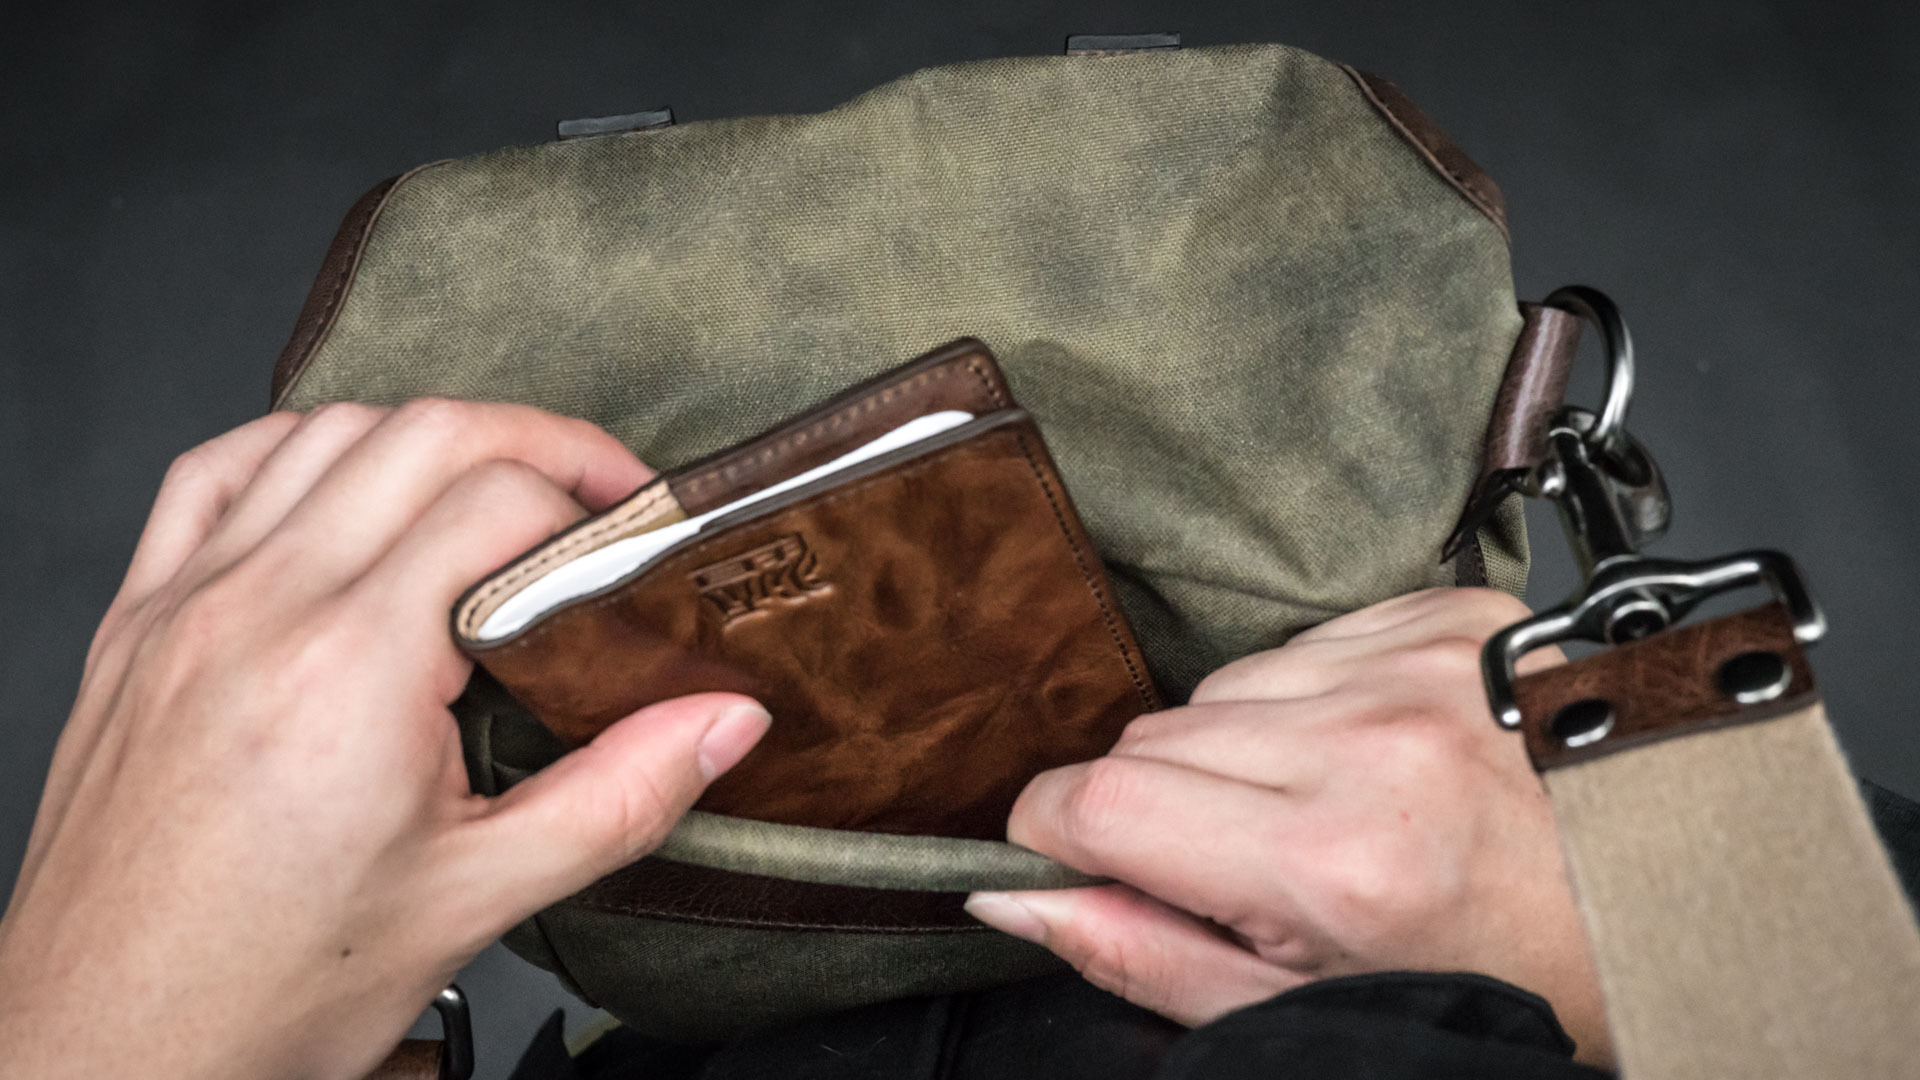 Fitting notebook into back pocket.